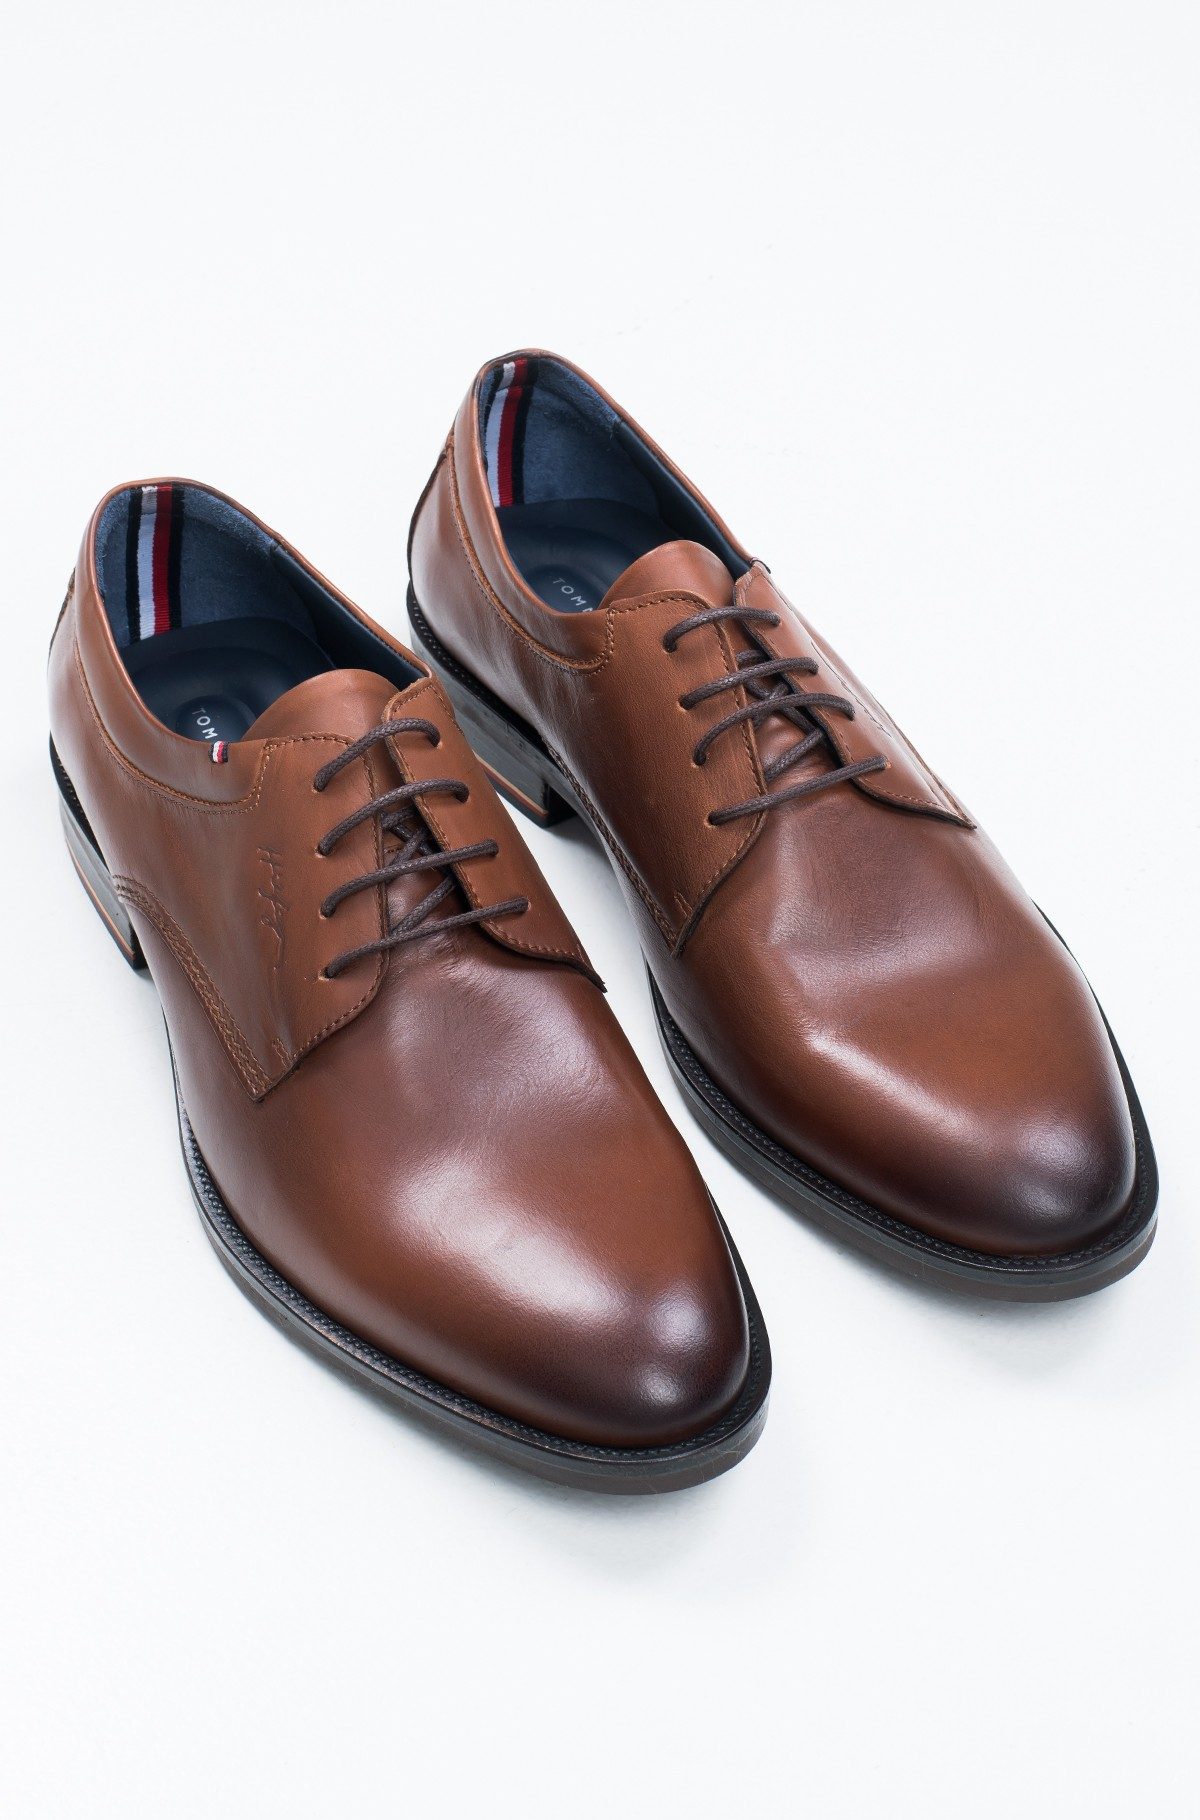 Batai SIGNATURE SMOOTH LEATHER SHOE-full-1